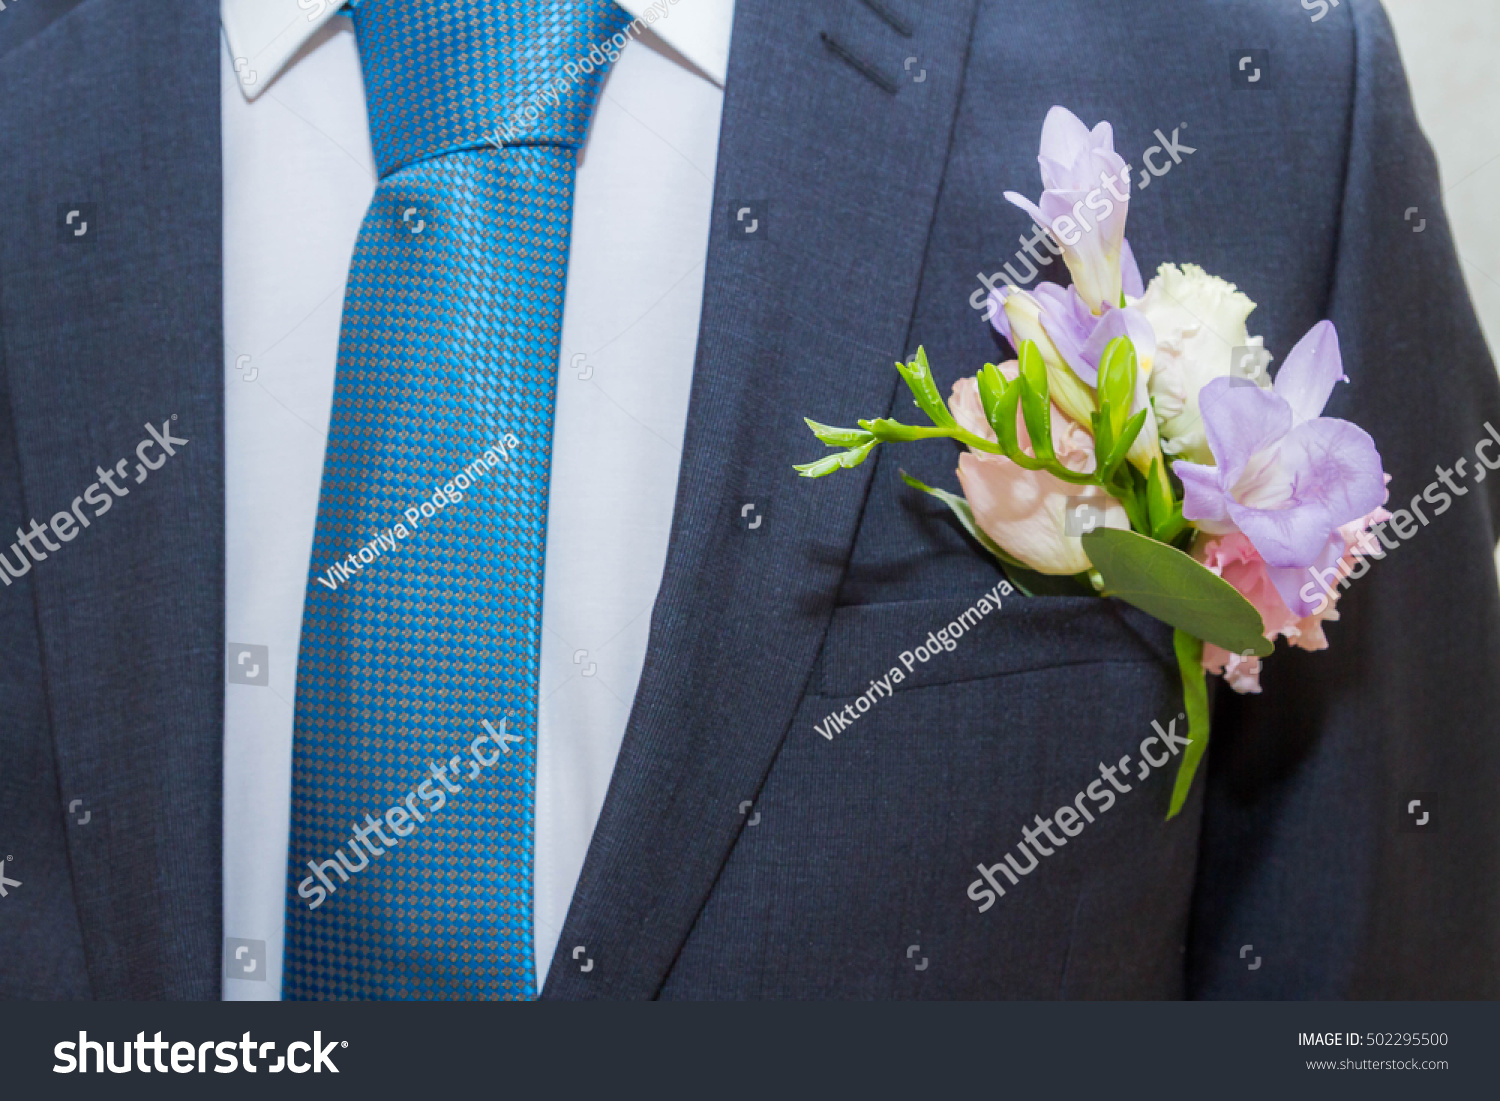 Small Bouquet Flowers Grooms Suit Stock Photo 502295500 - Shutterstock